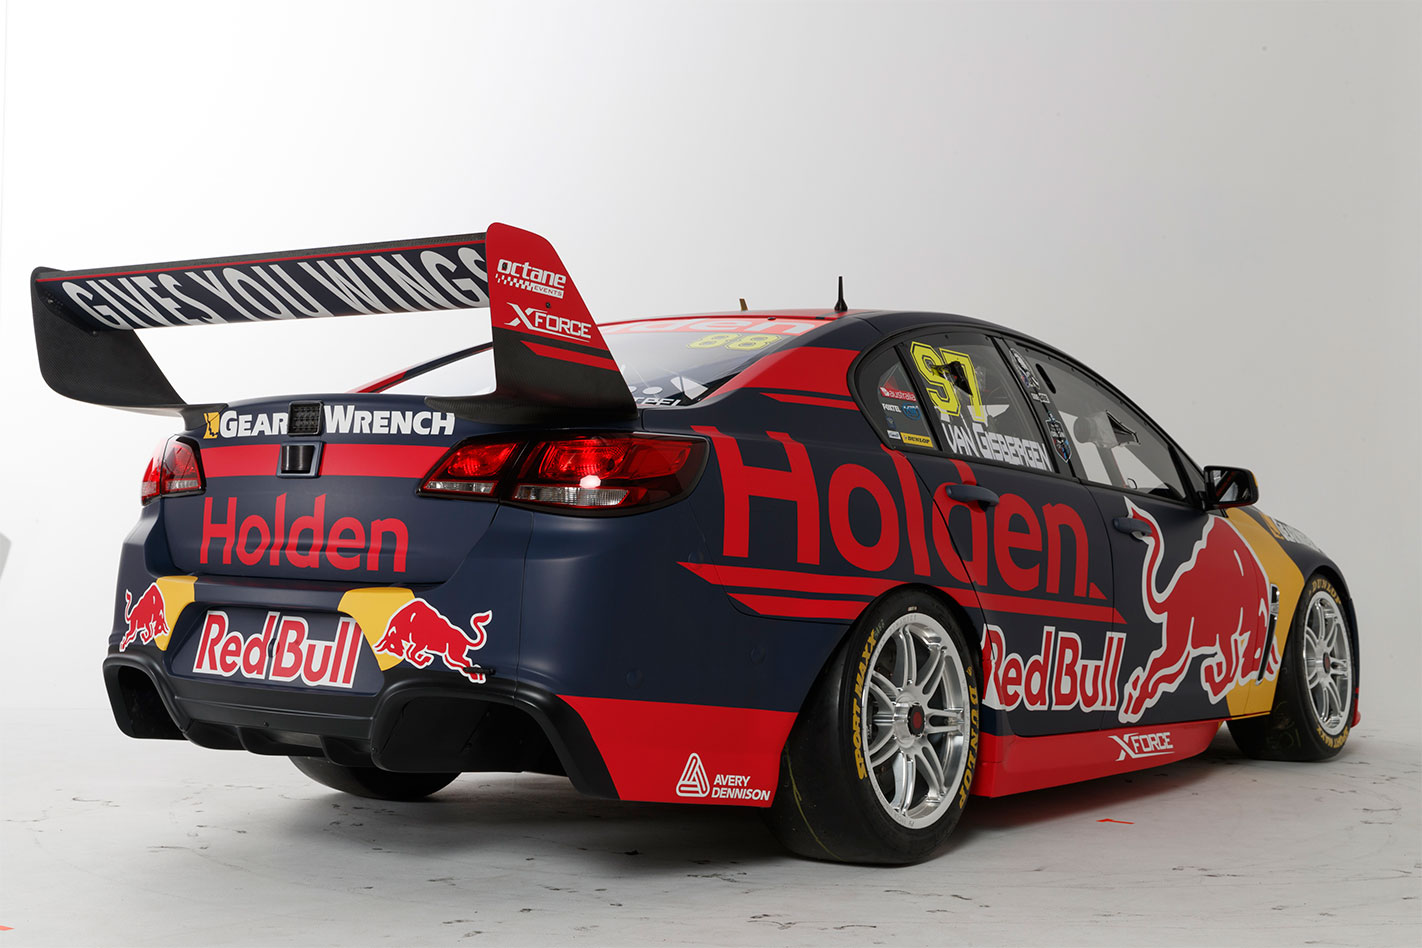 2017 Red Bull Holden Racing Supercar rear